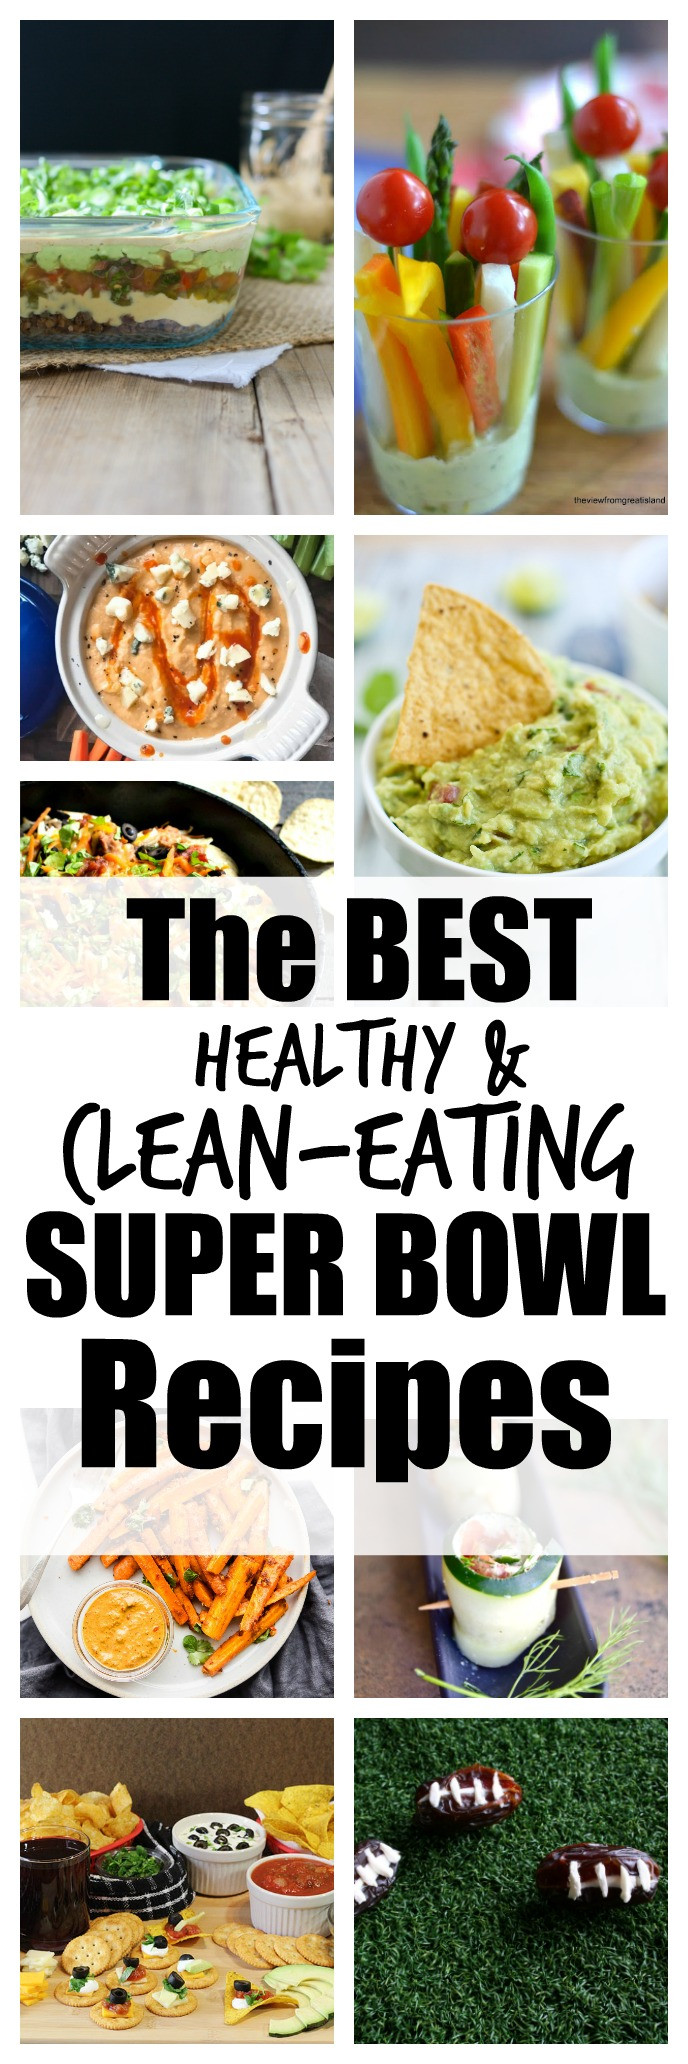 Healthy Clean Snacks  Healthy and Clean Eating Super Bowl Recipes Happy